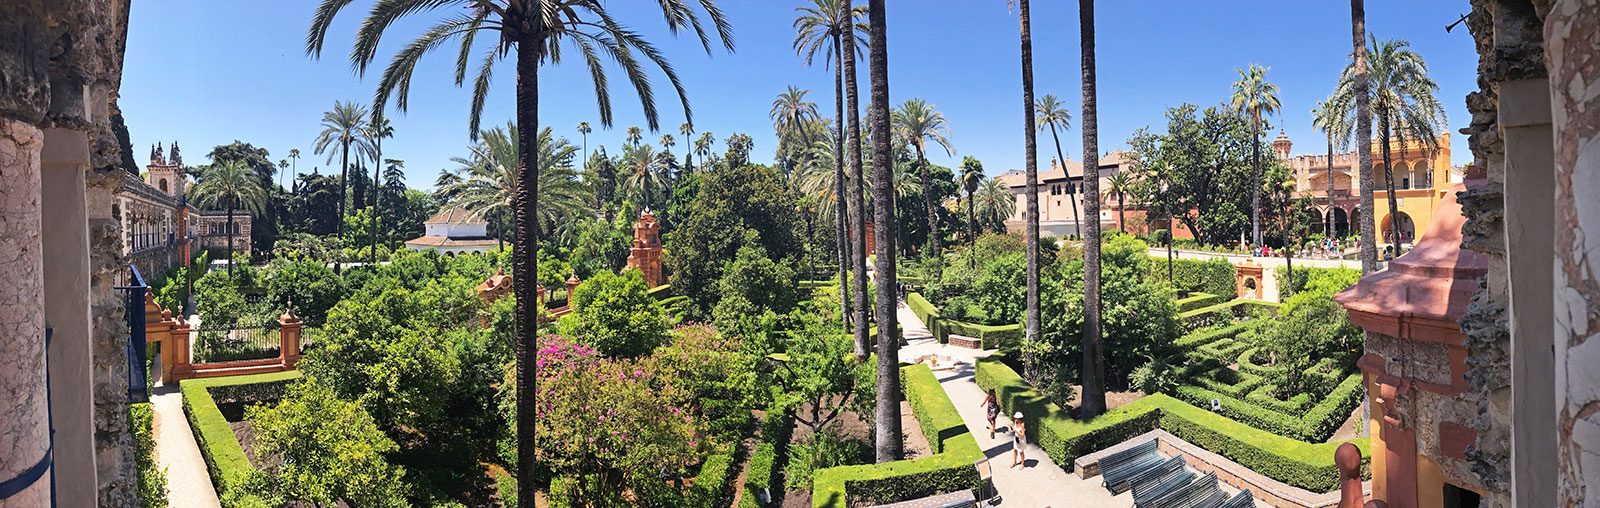 Views of the garden from the Grotto Gallery, Alcázar, Seville, Spain